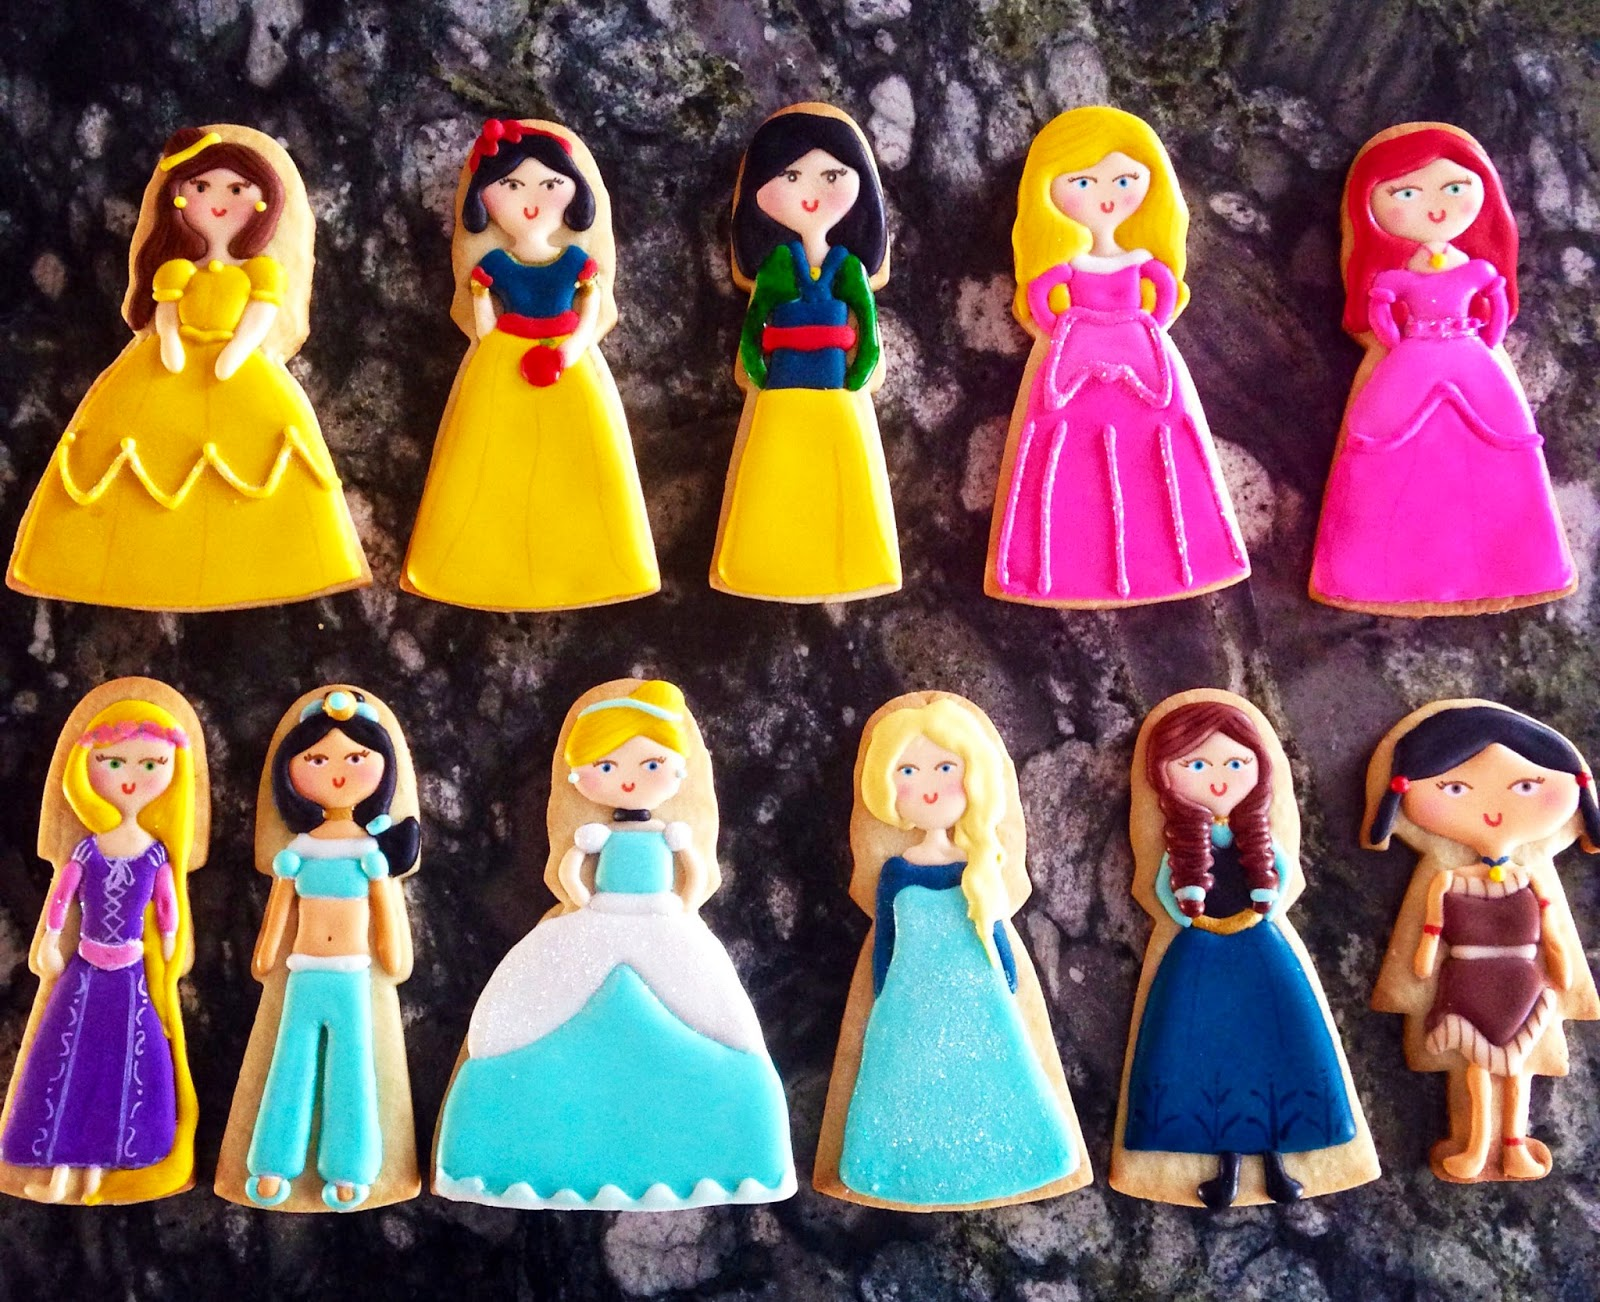 Galletas Decoradas De Princesas Cakelicioso Galletas Decoradas Princesas Disney